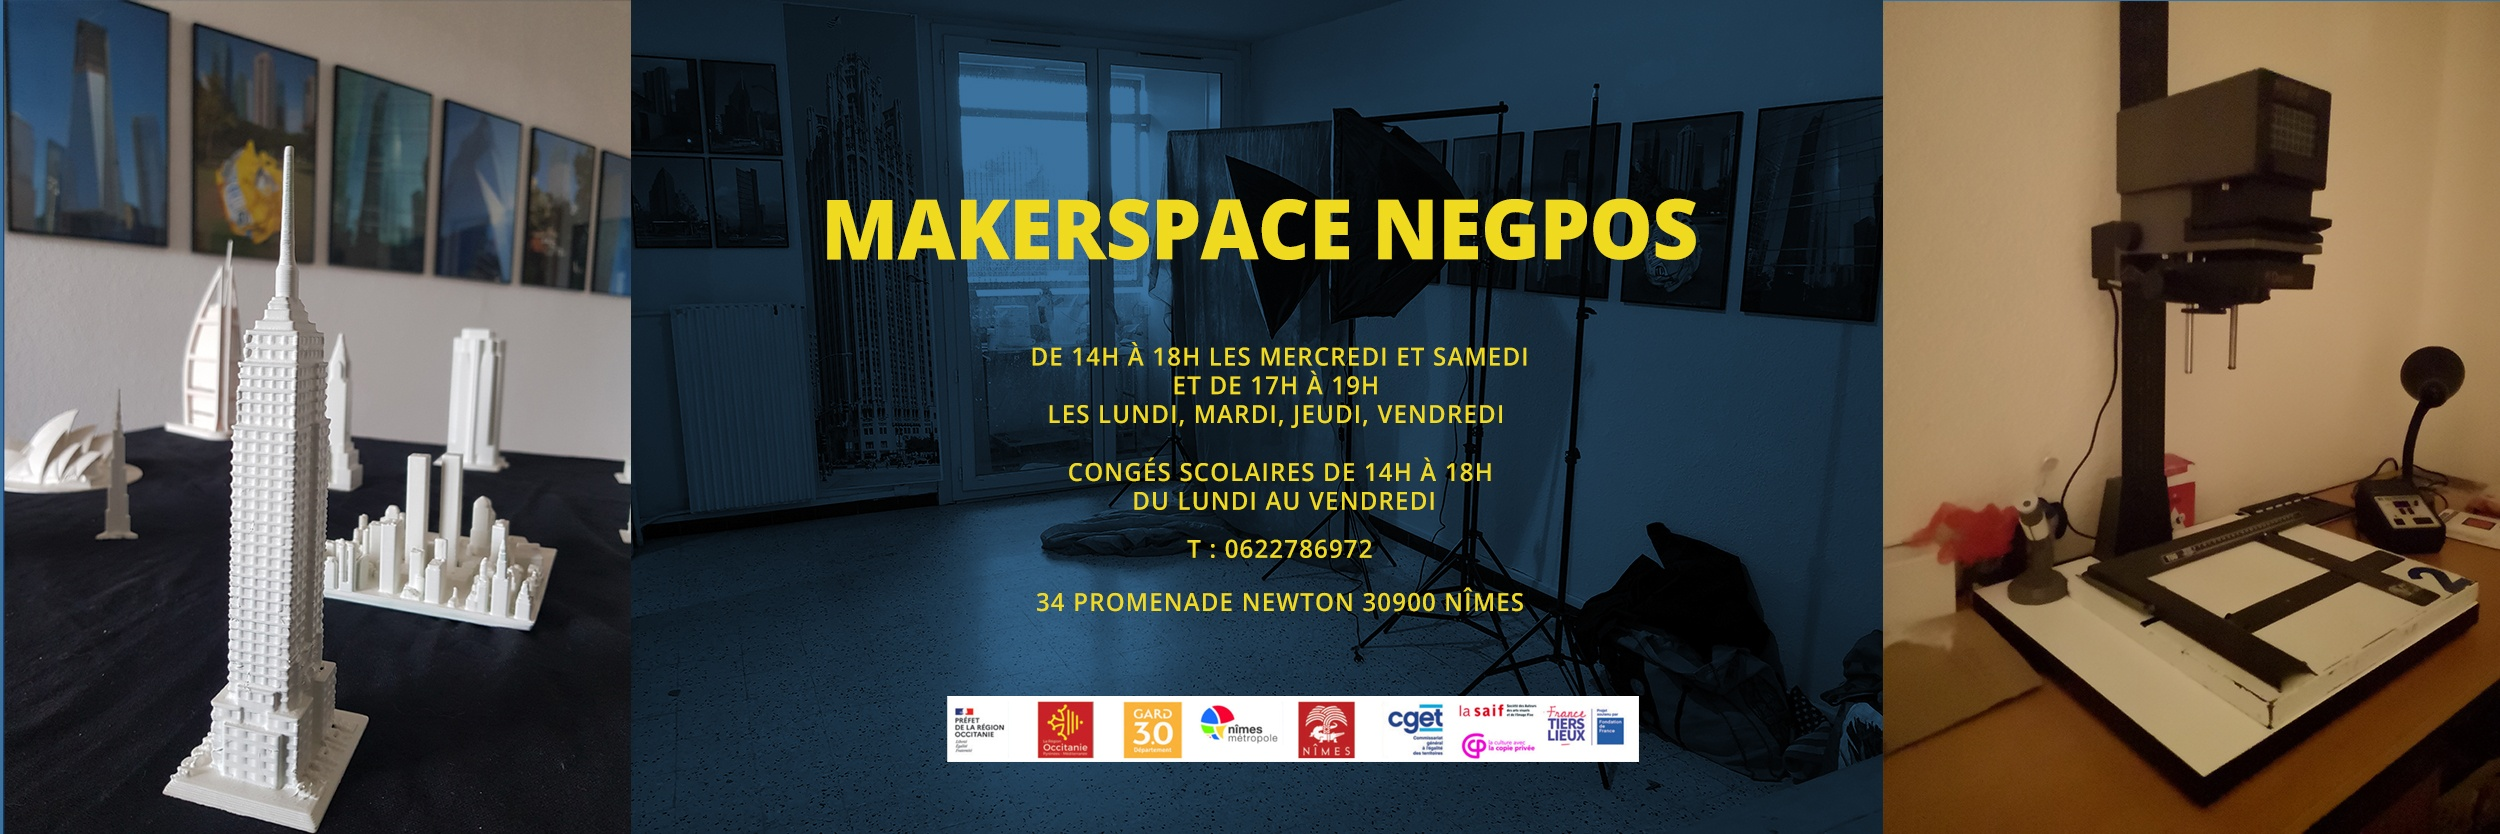 Baniere MakerSpace